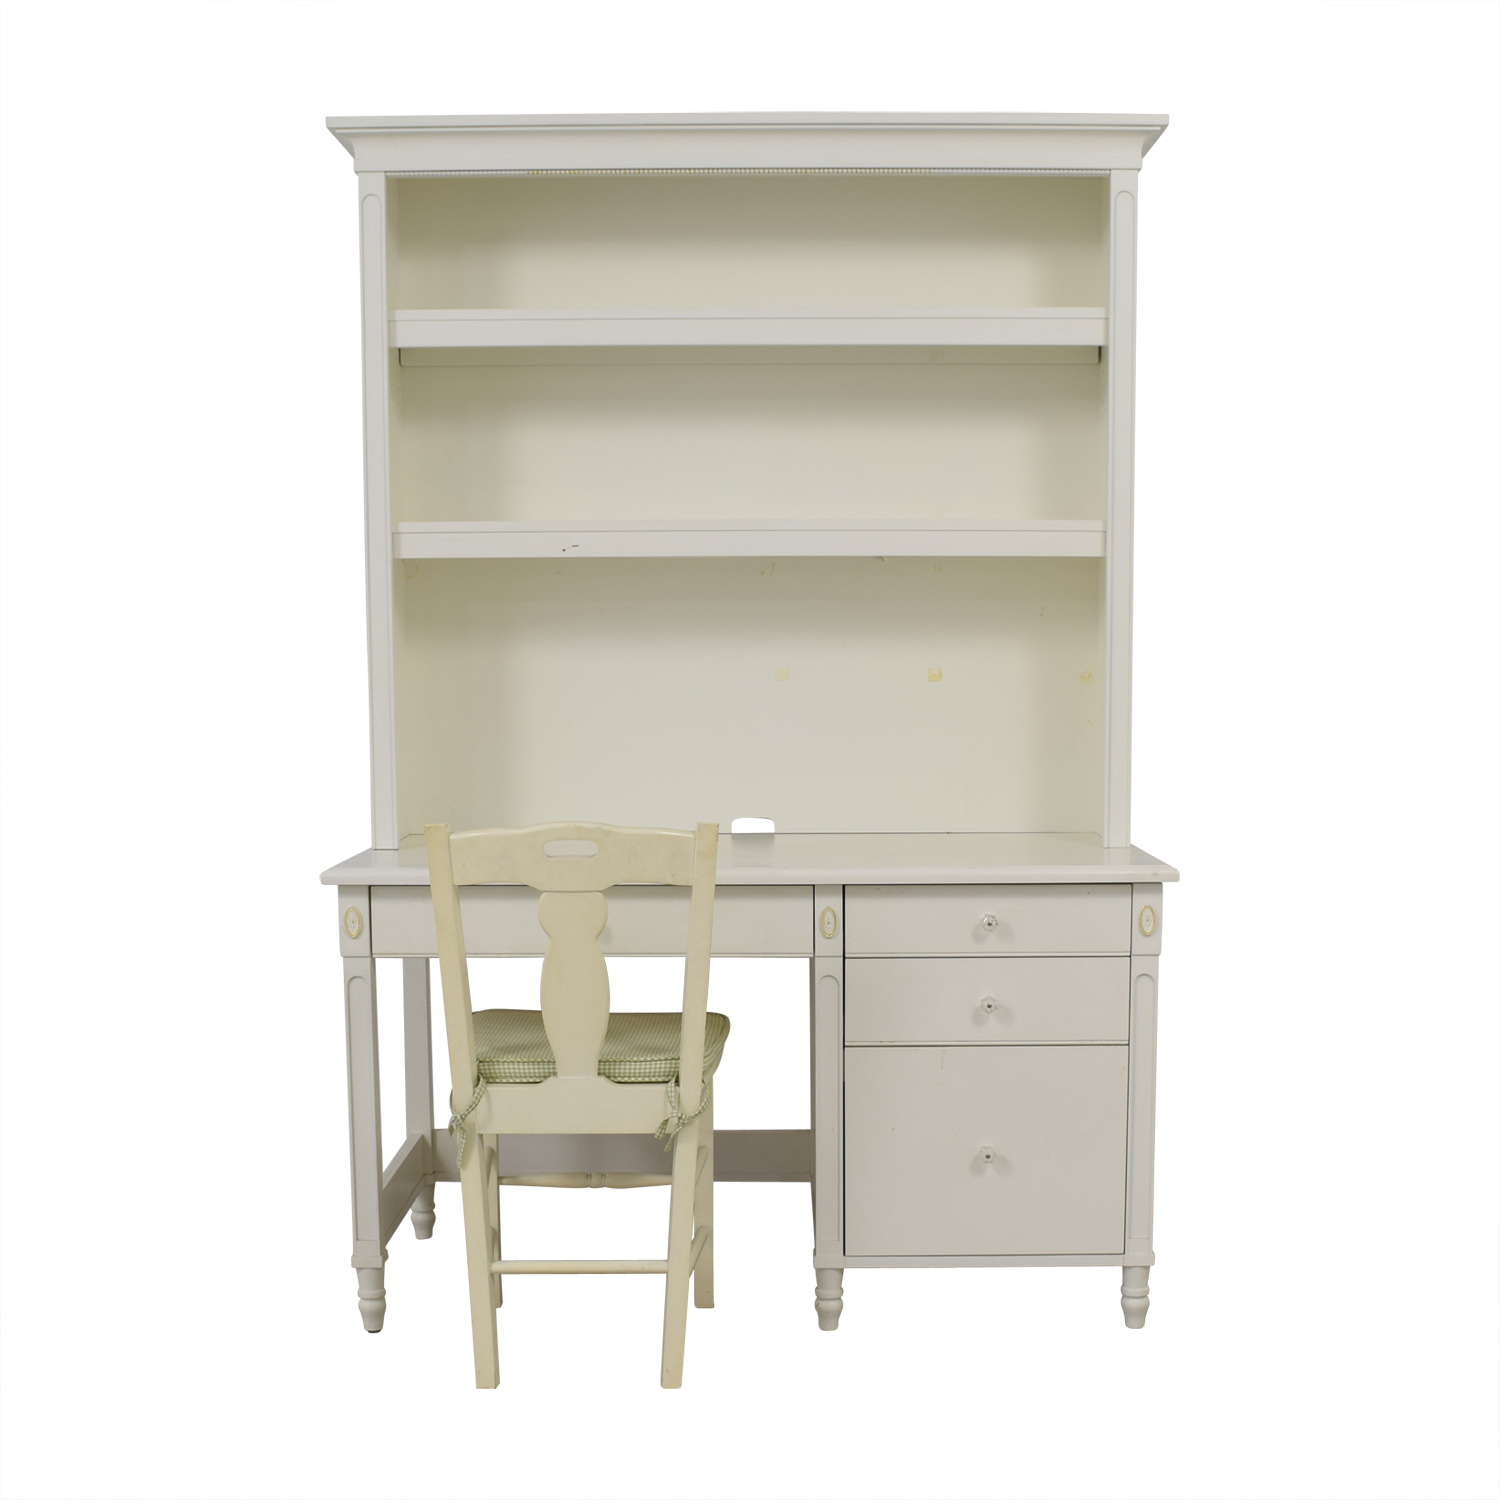 White Three-Drawer Wood Desk and Chair second hand